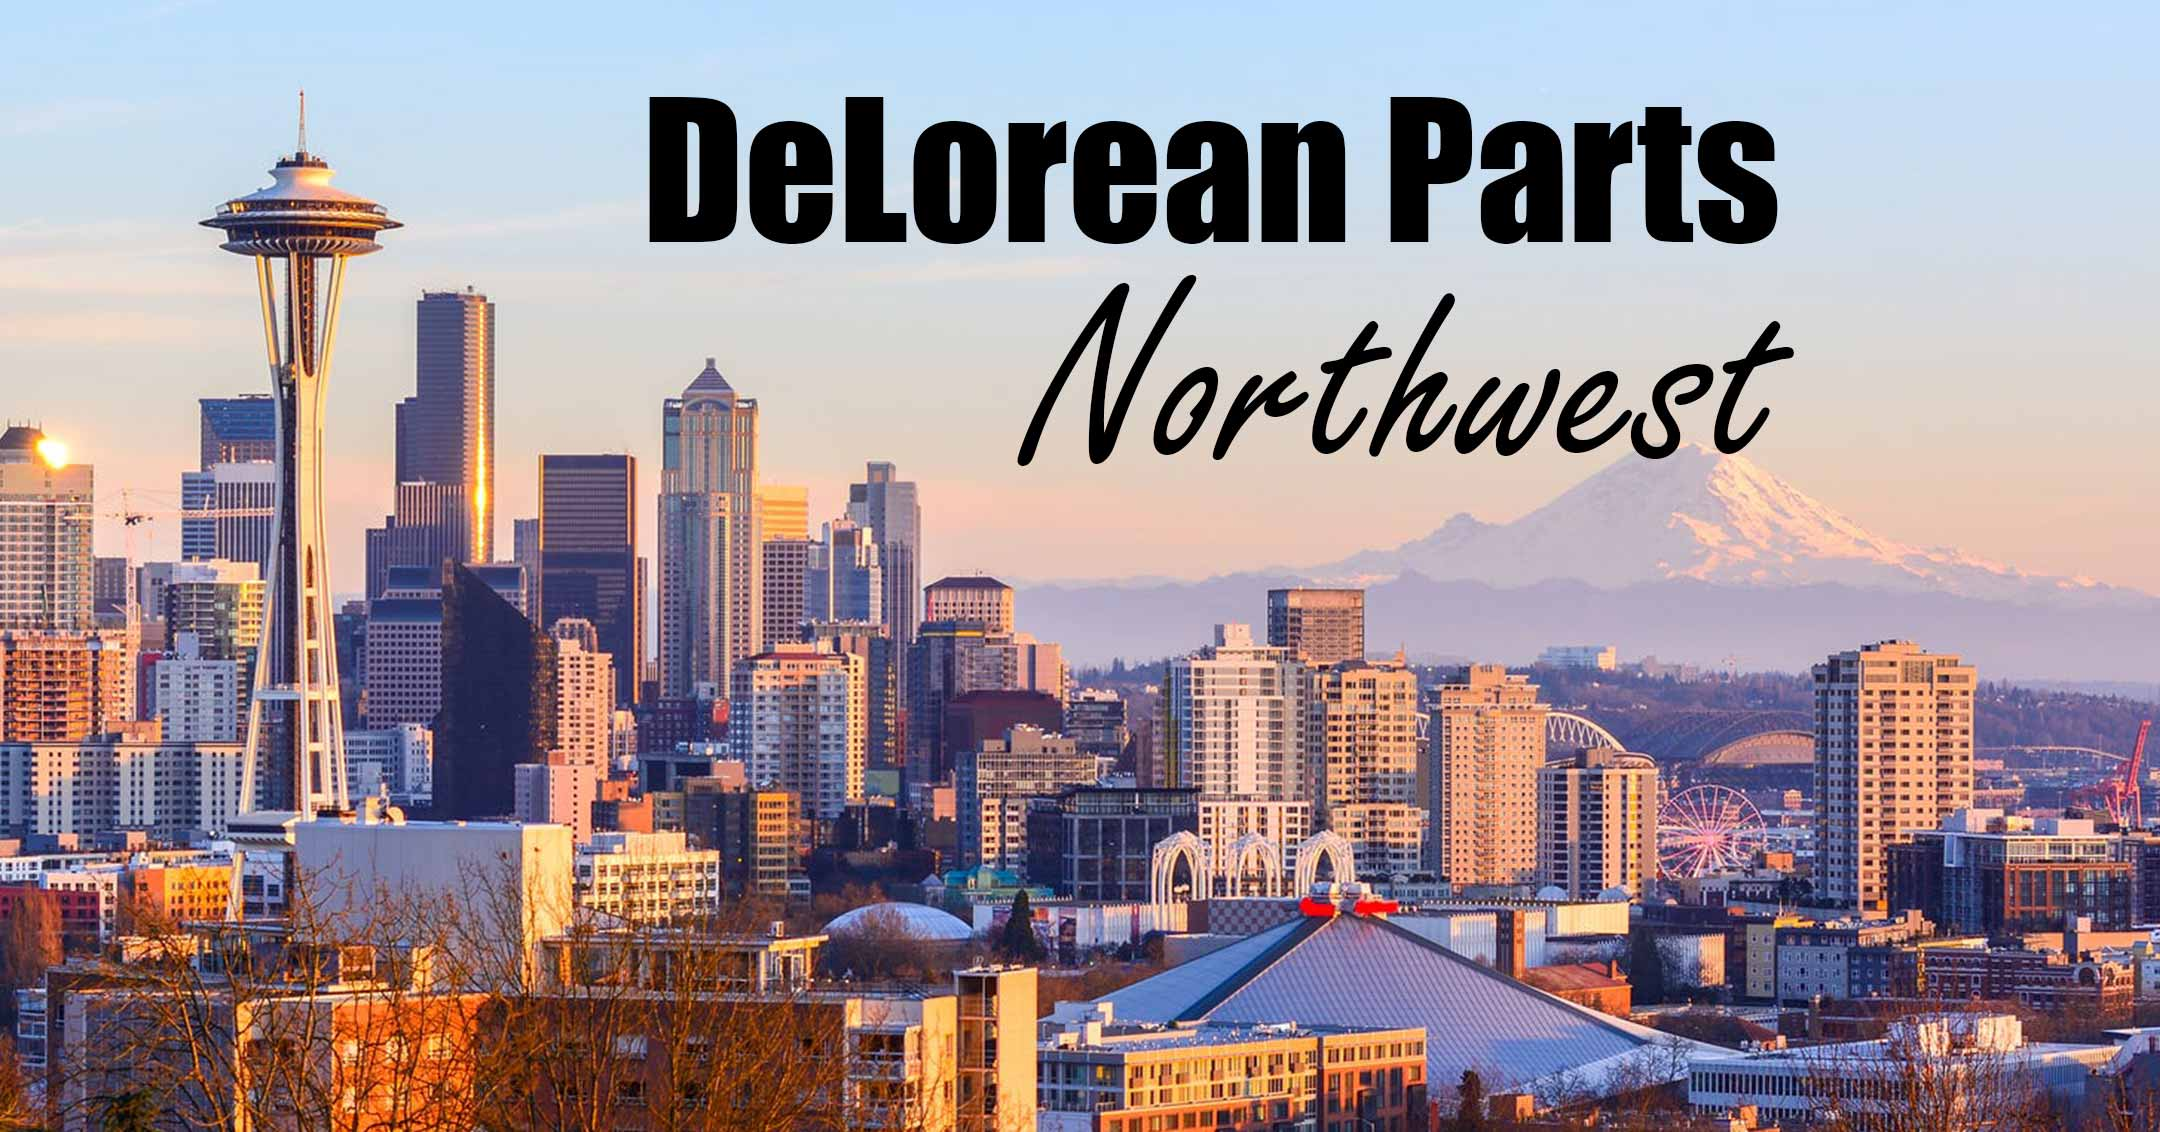 DeLorean Parts Northwest | DeLorean-Parts.com